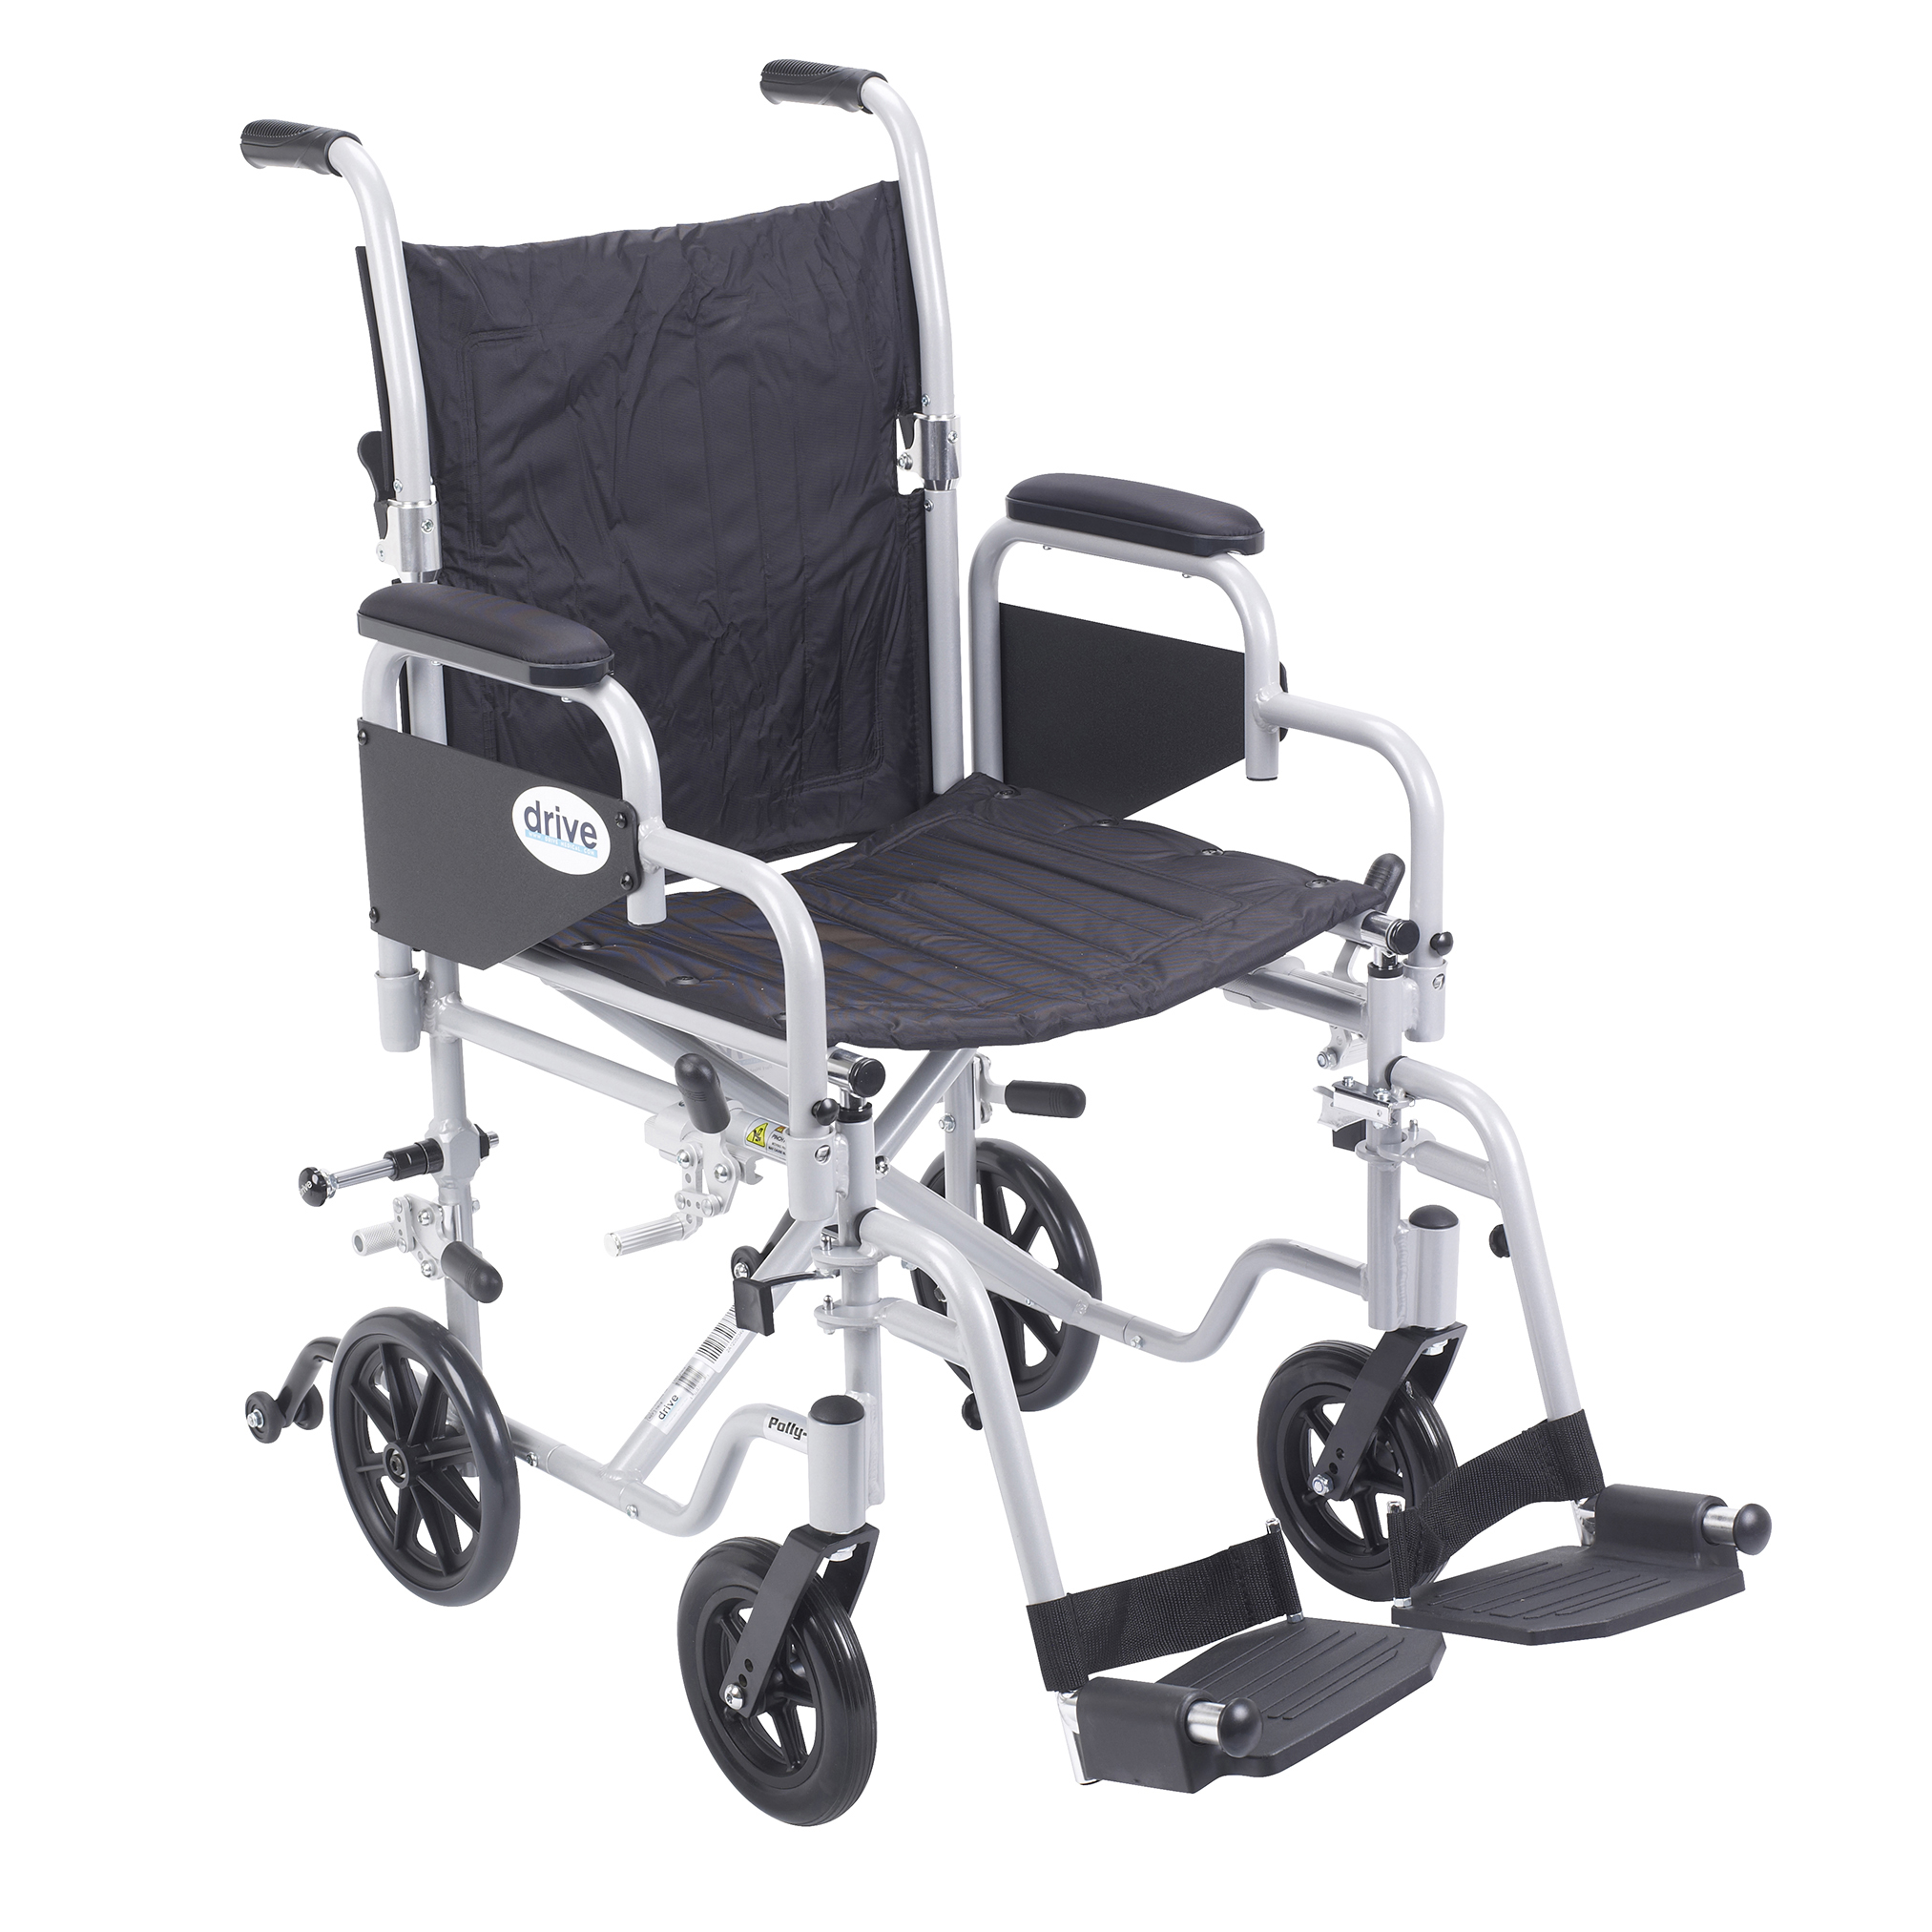 Drive Medical Poly Fly Light Weight Transport Chair Wheelchair with Swing away Footrests